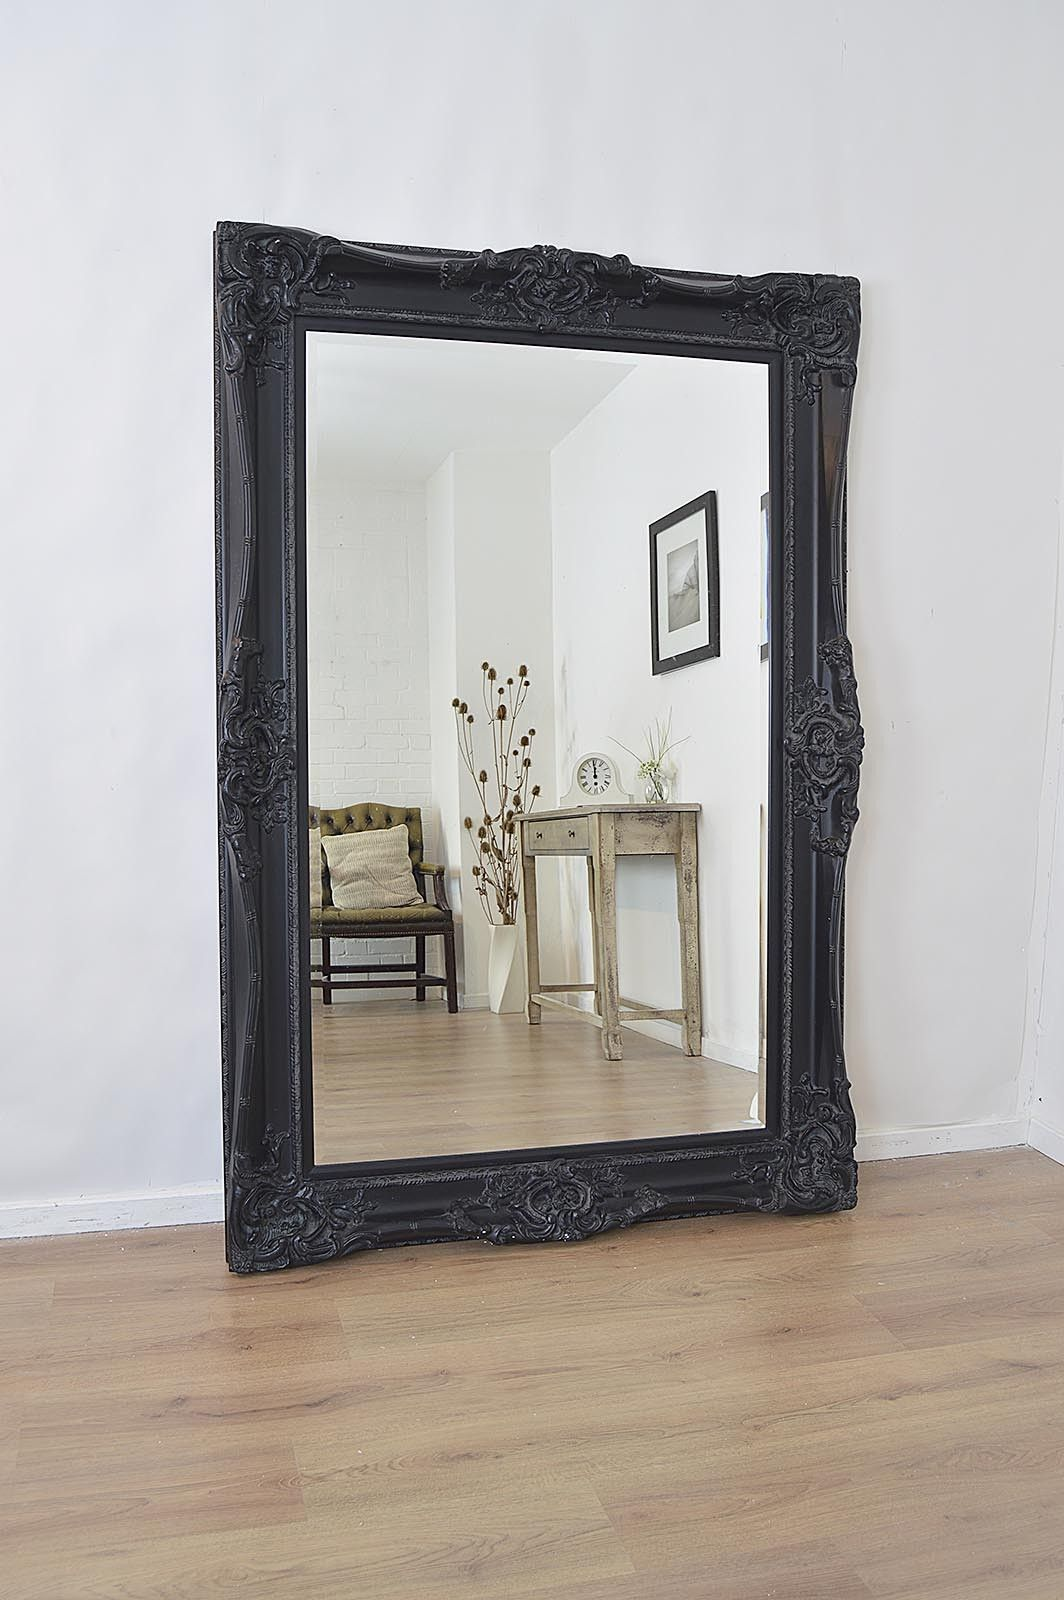 6ft X 4ft Large Black Antique Style Rectangle Wood Wall Mirror Overmantle Bedroom Decor